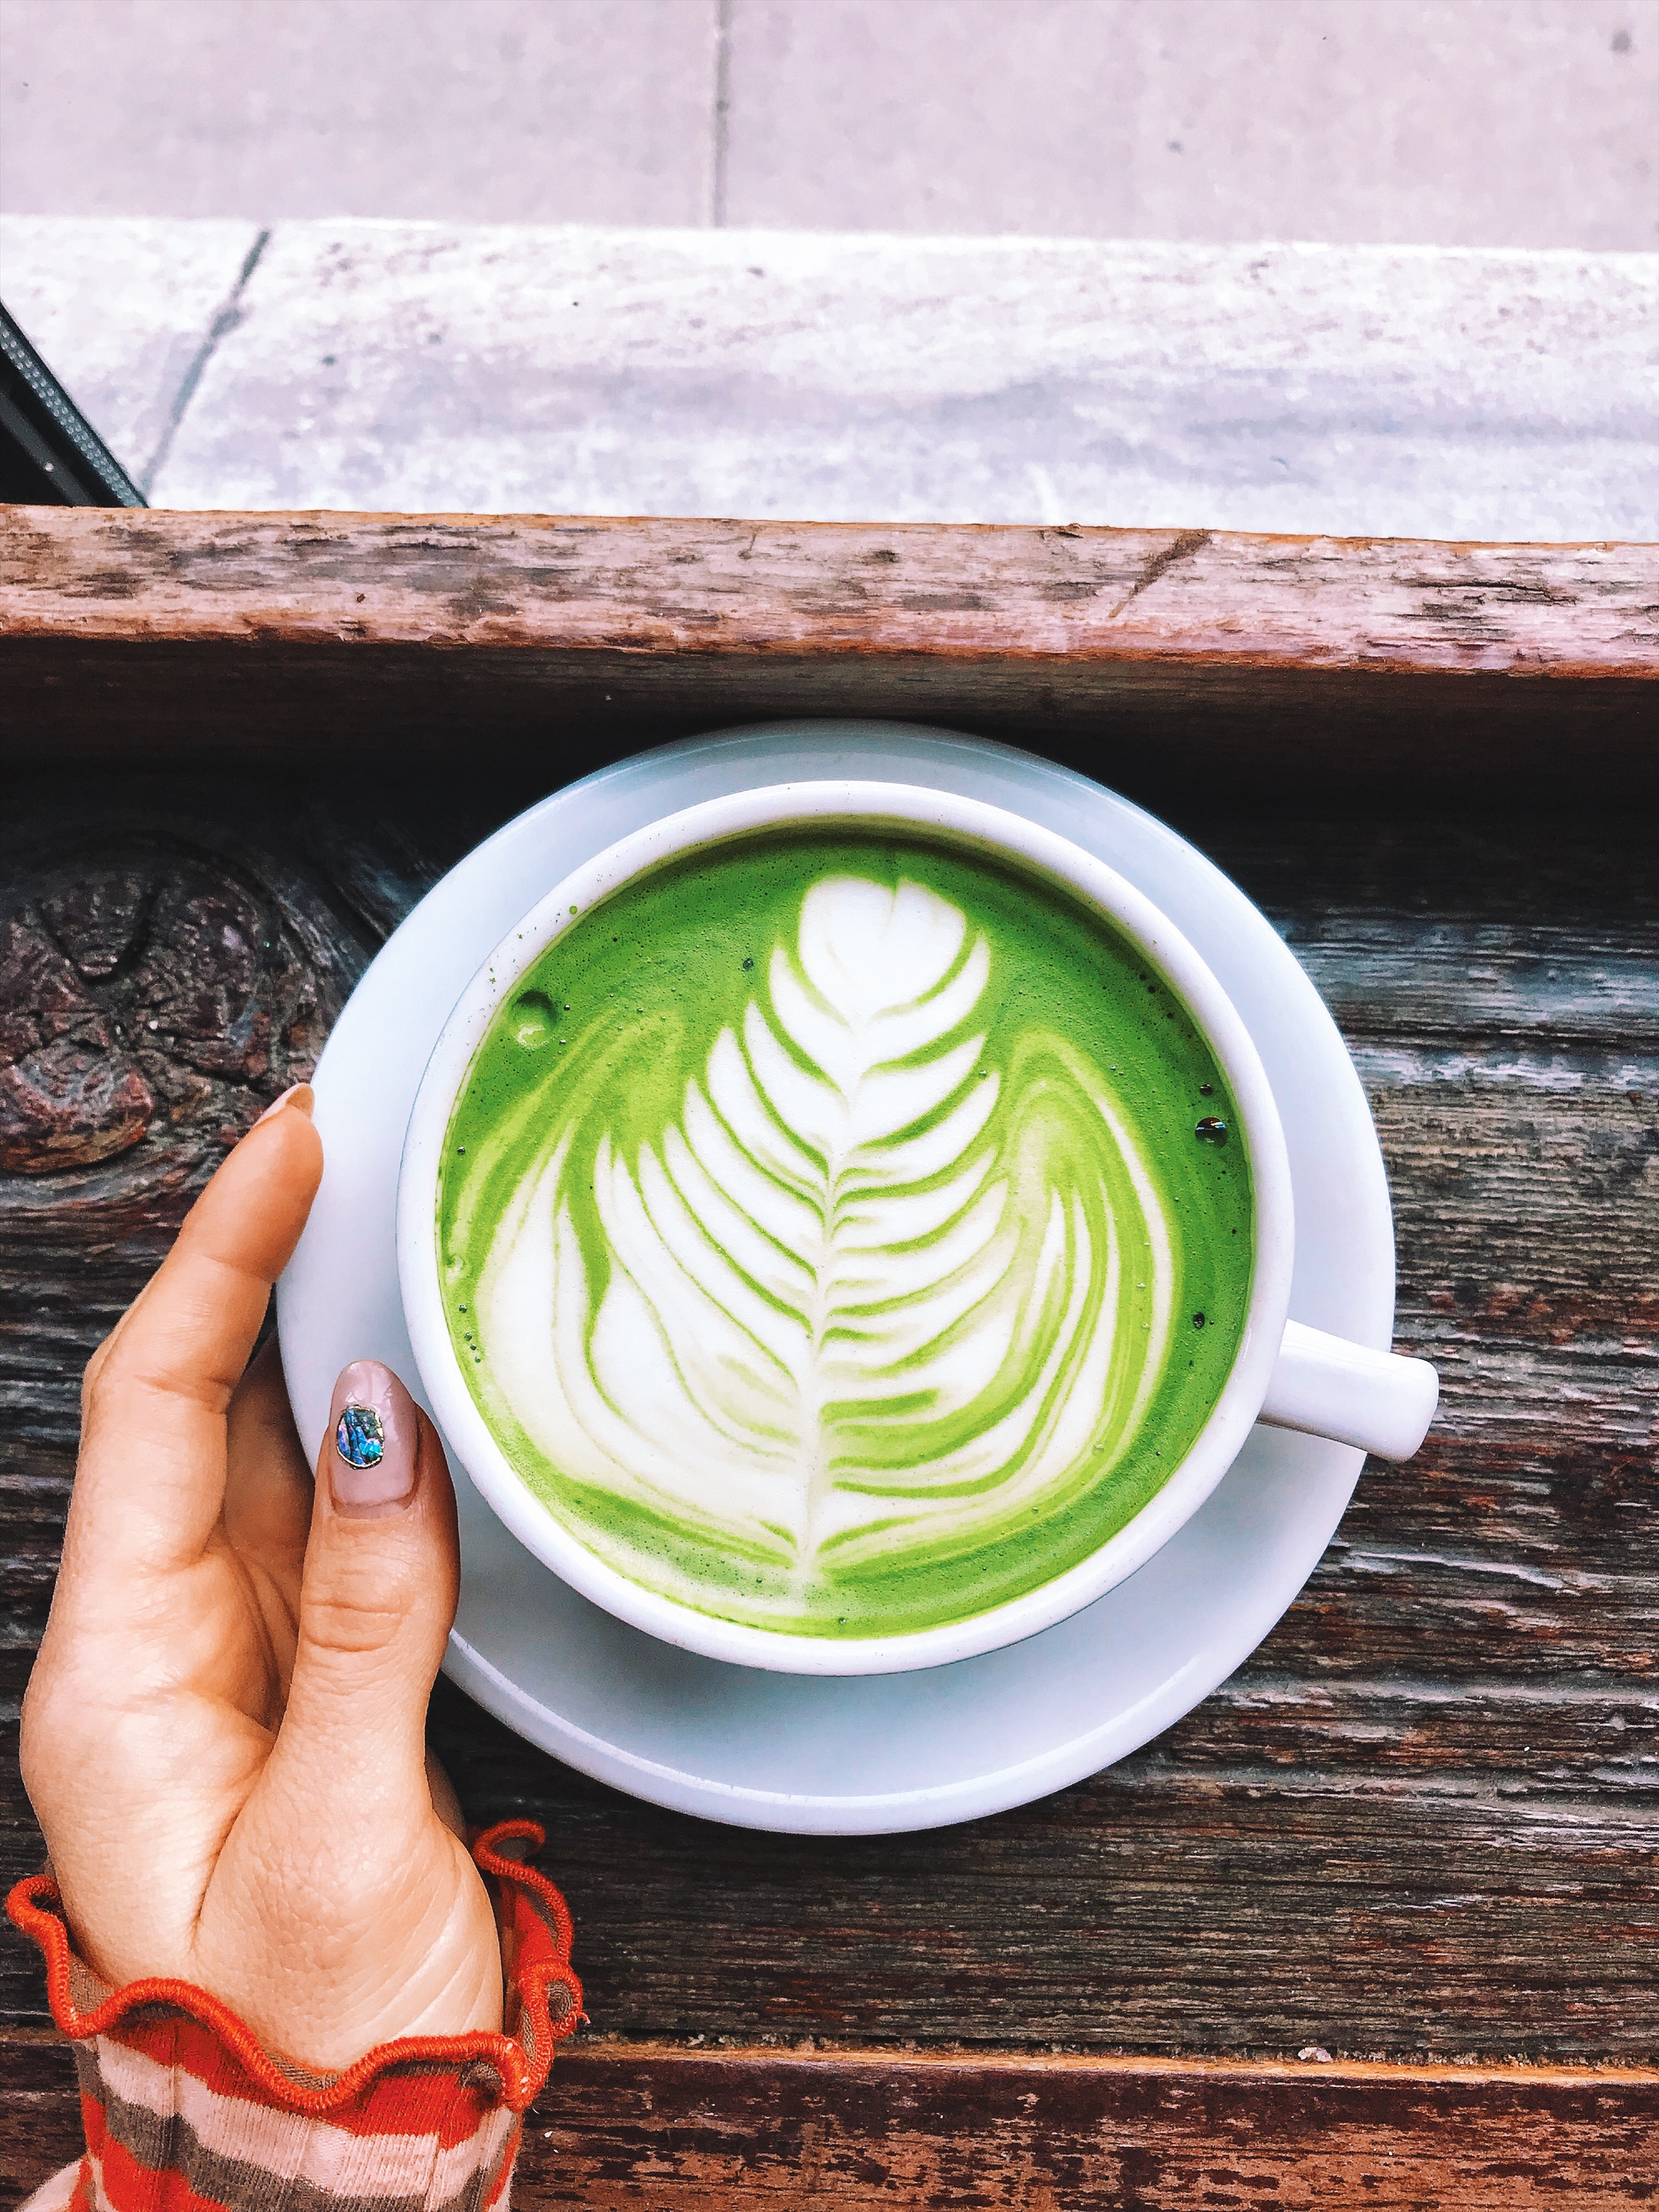 The beautiful insta-friendly Sawada matcha latte (with soy milk)...and no, I didn't drink this one. I got an almond milk one to drink and just took photos of this one. :)